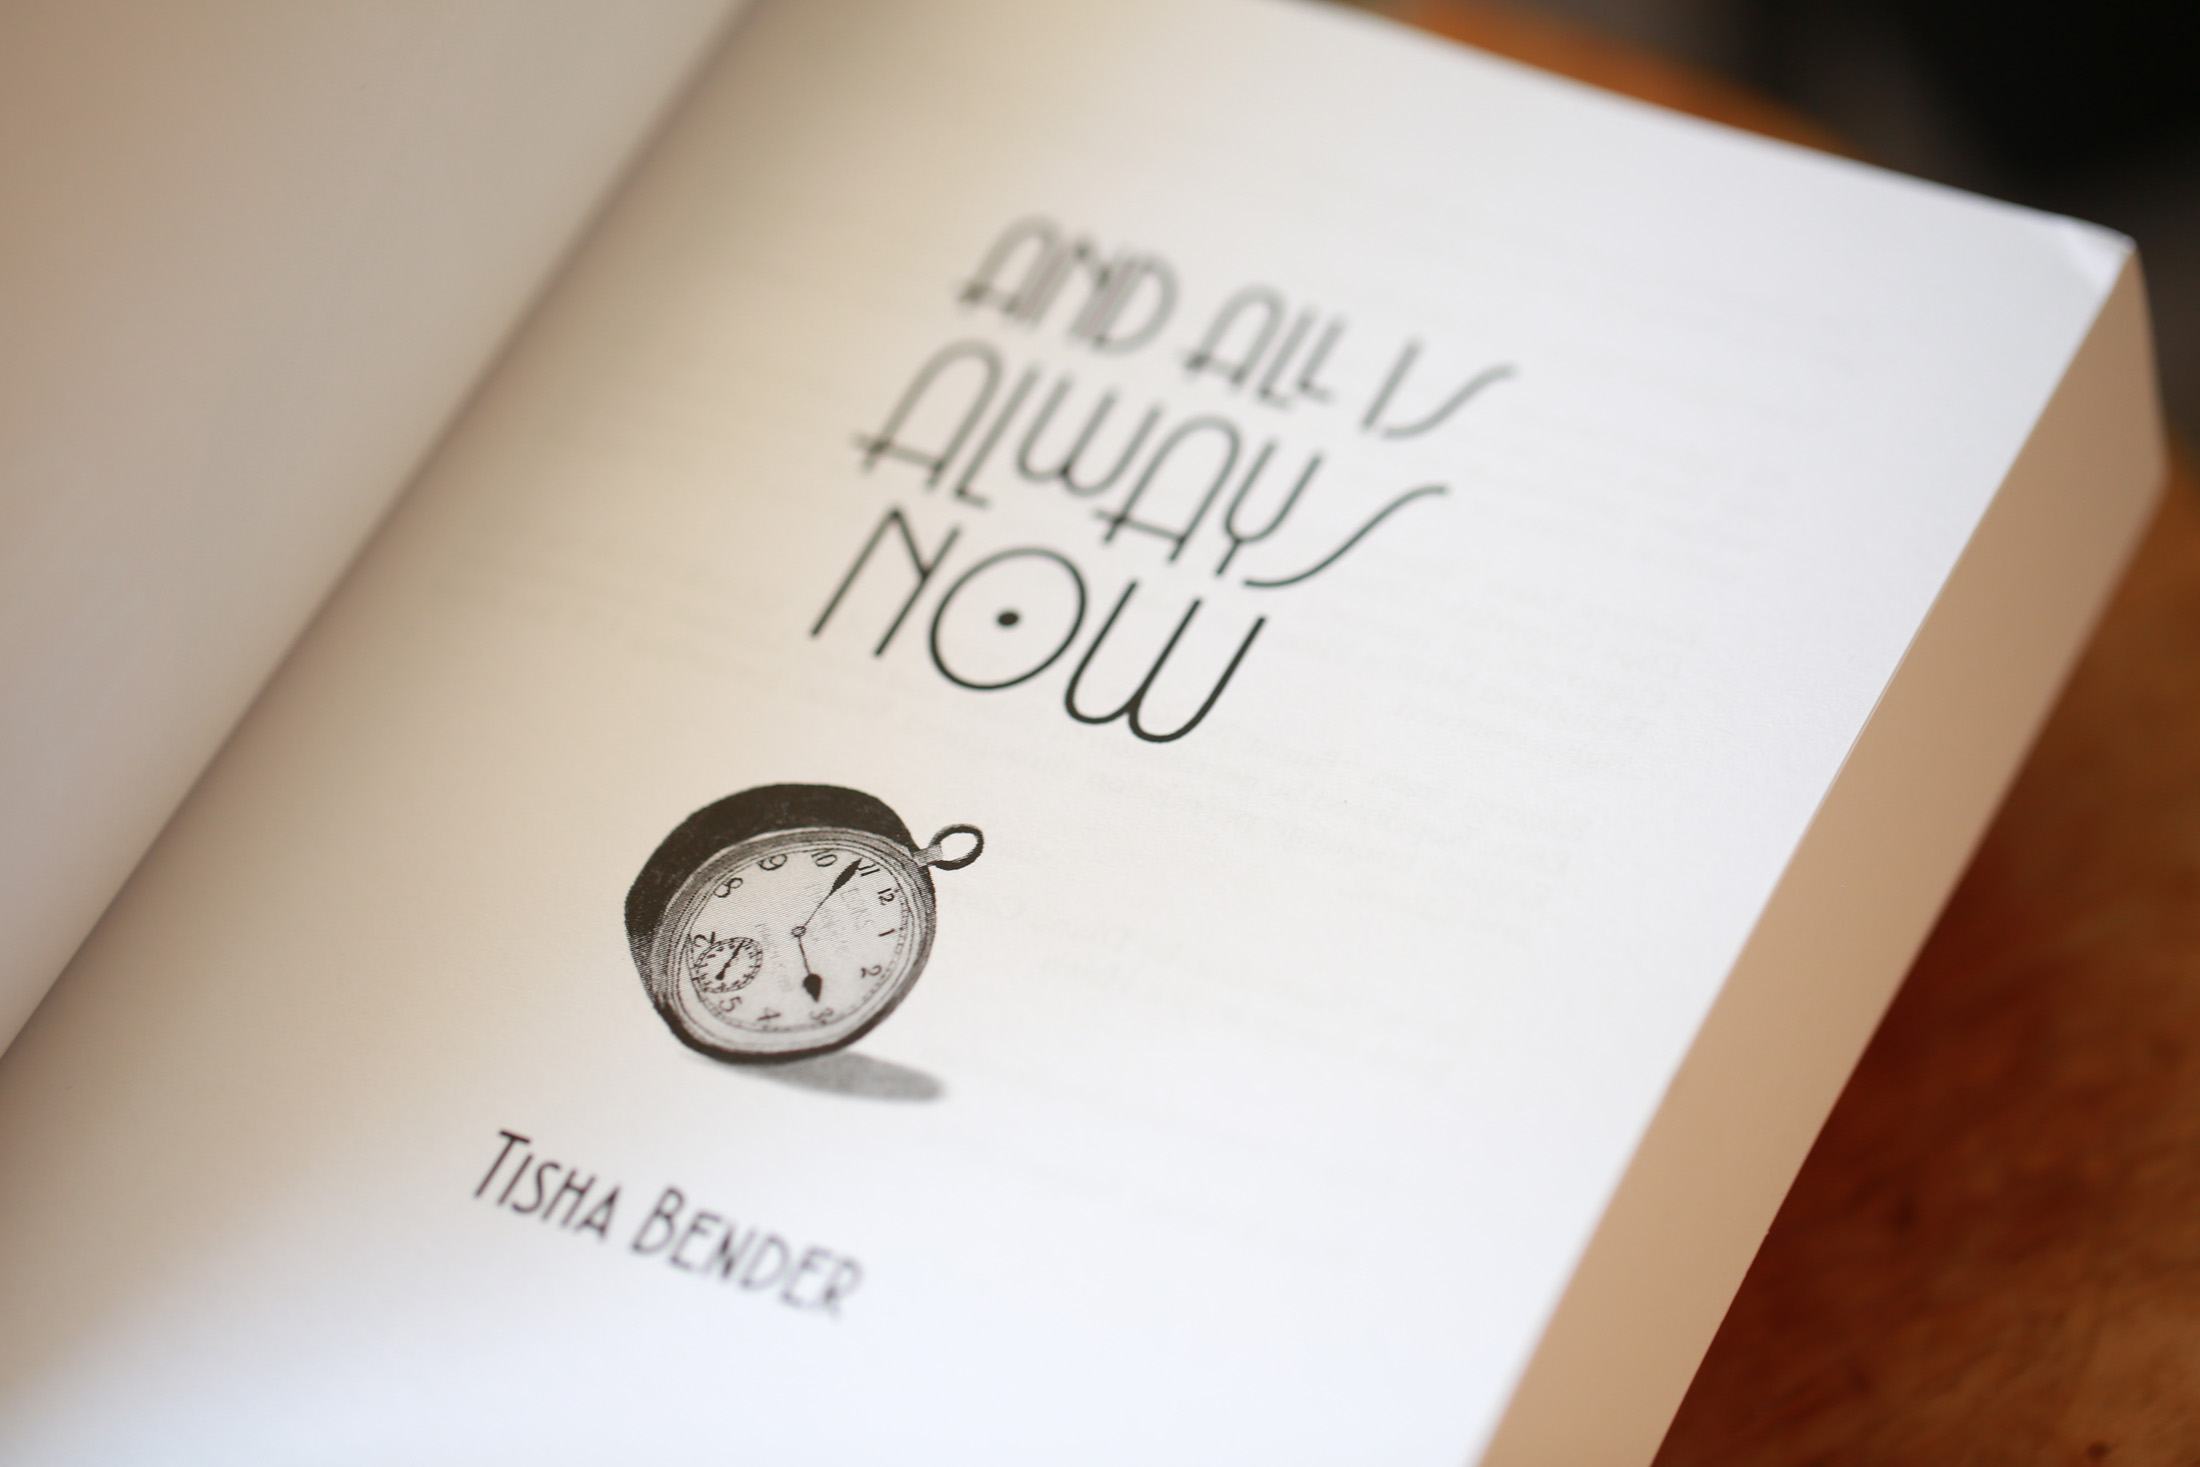 Tisha-Bender_And-All-Is-Always-Now_Time-001